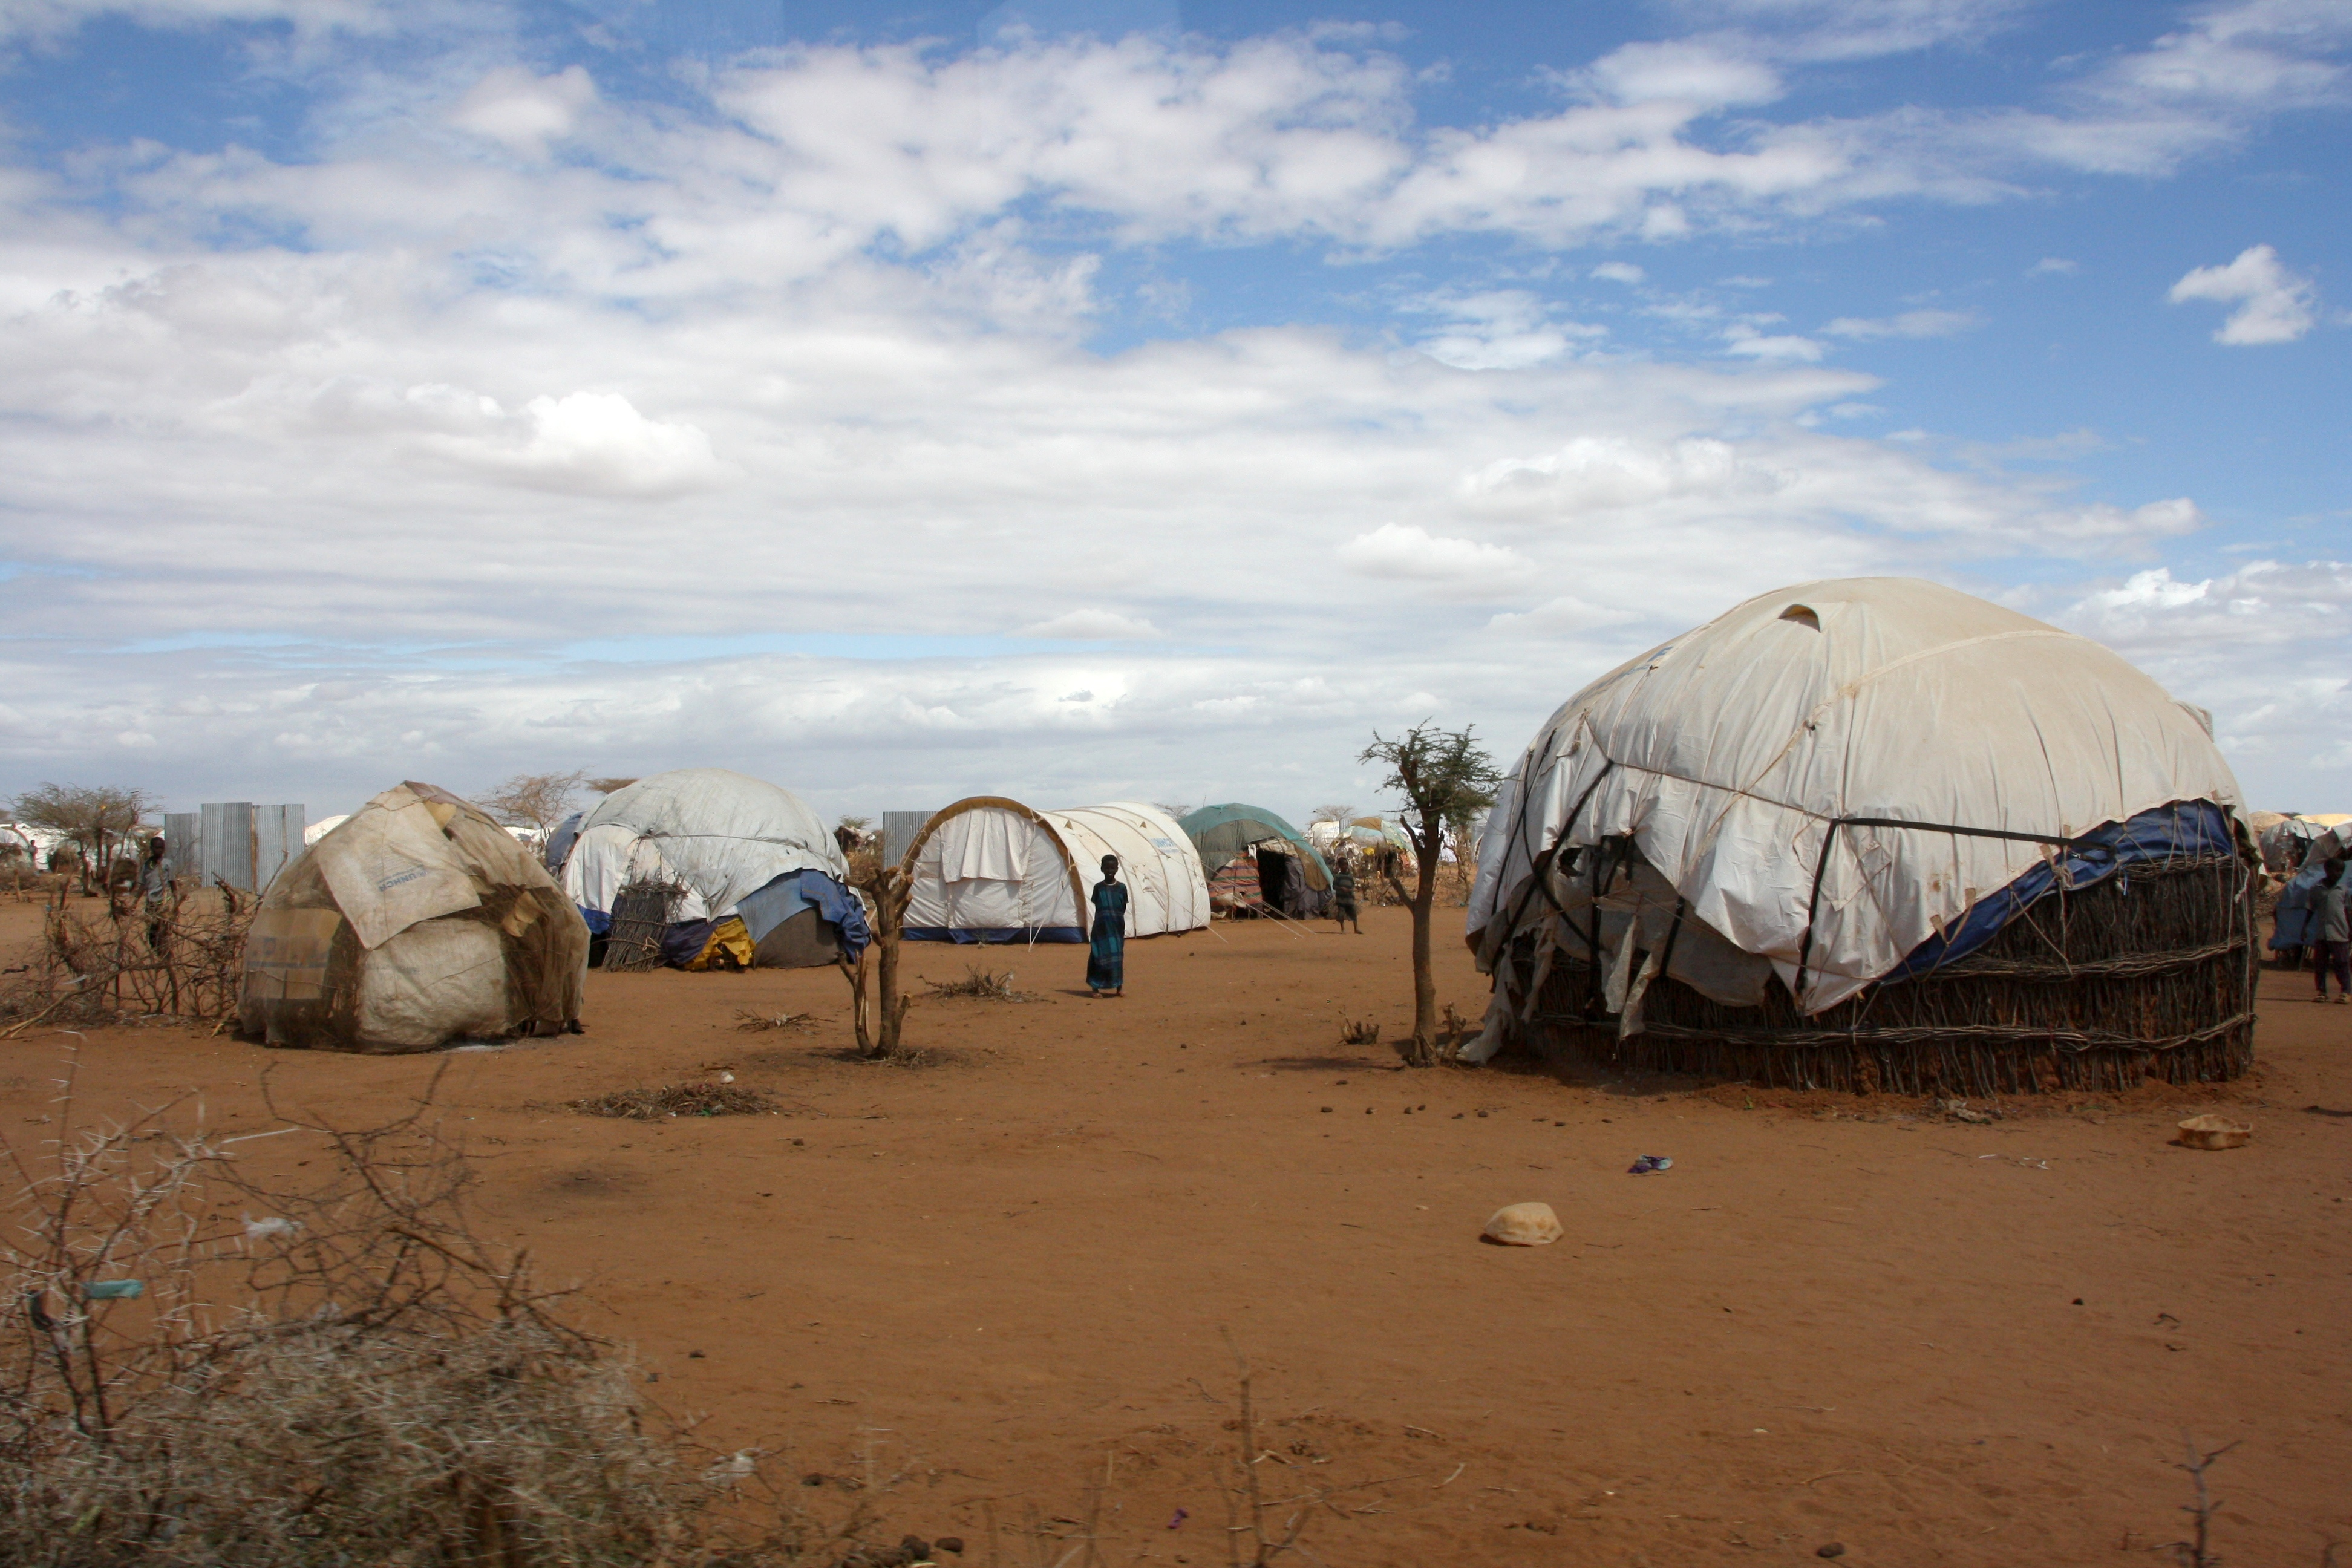 Secretary of State Andrew Mitchell visits the Dadaab refugee camp in northern Kenya, 16 July 2011.